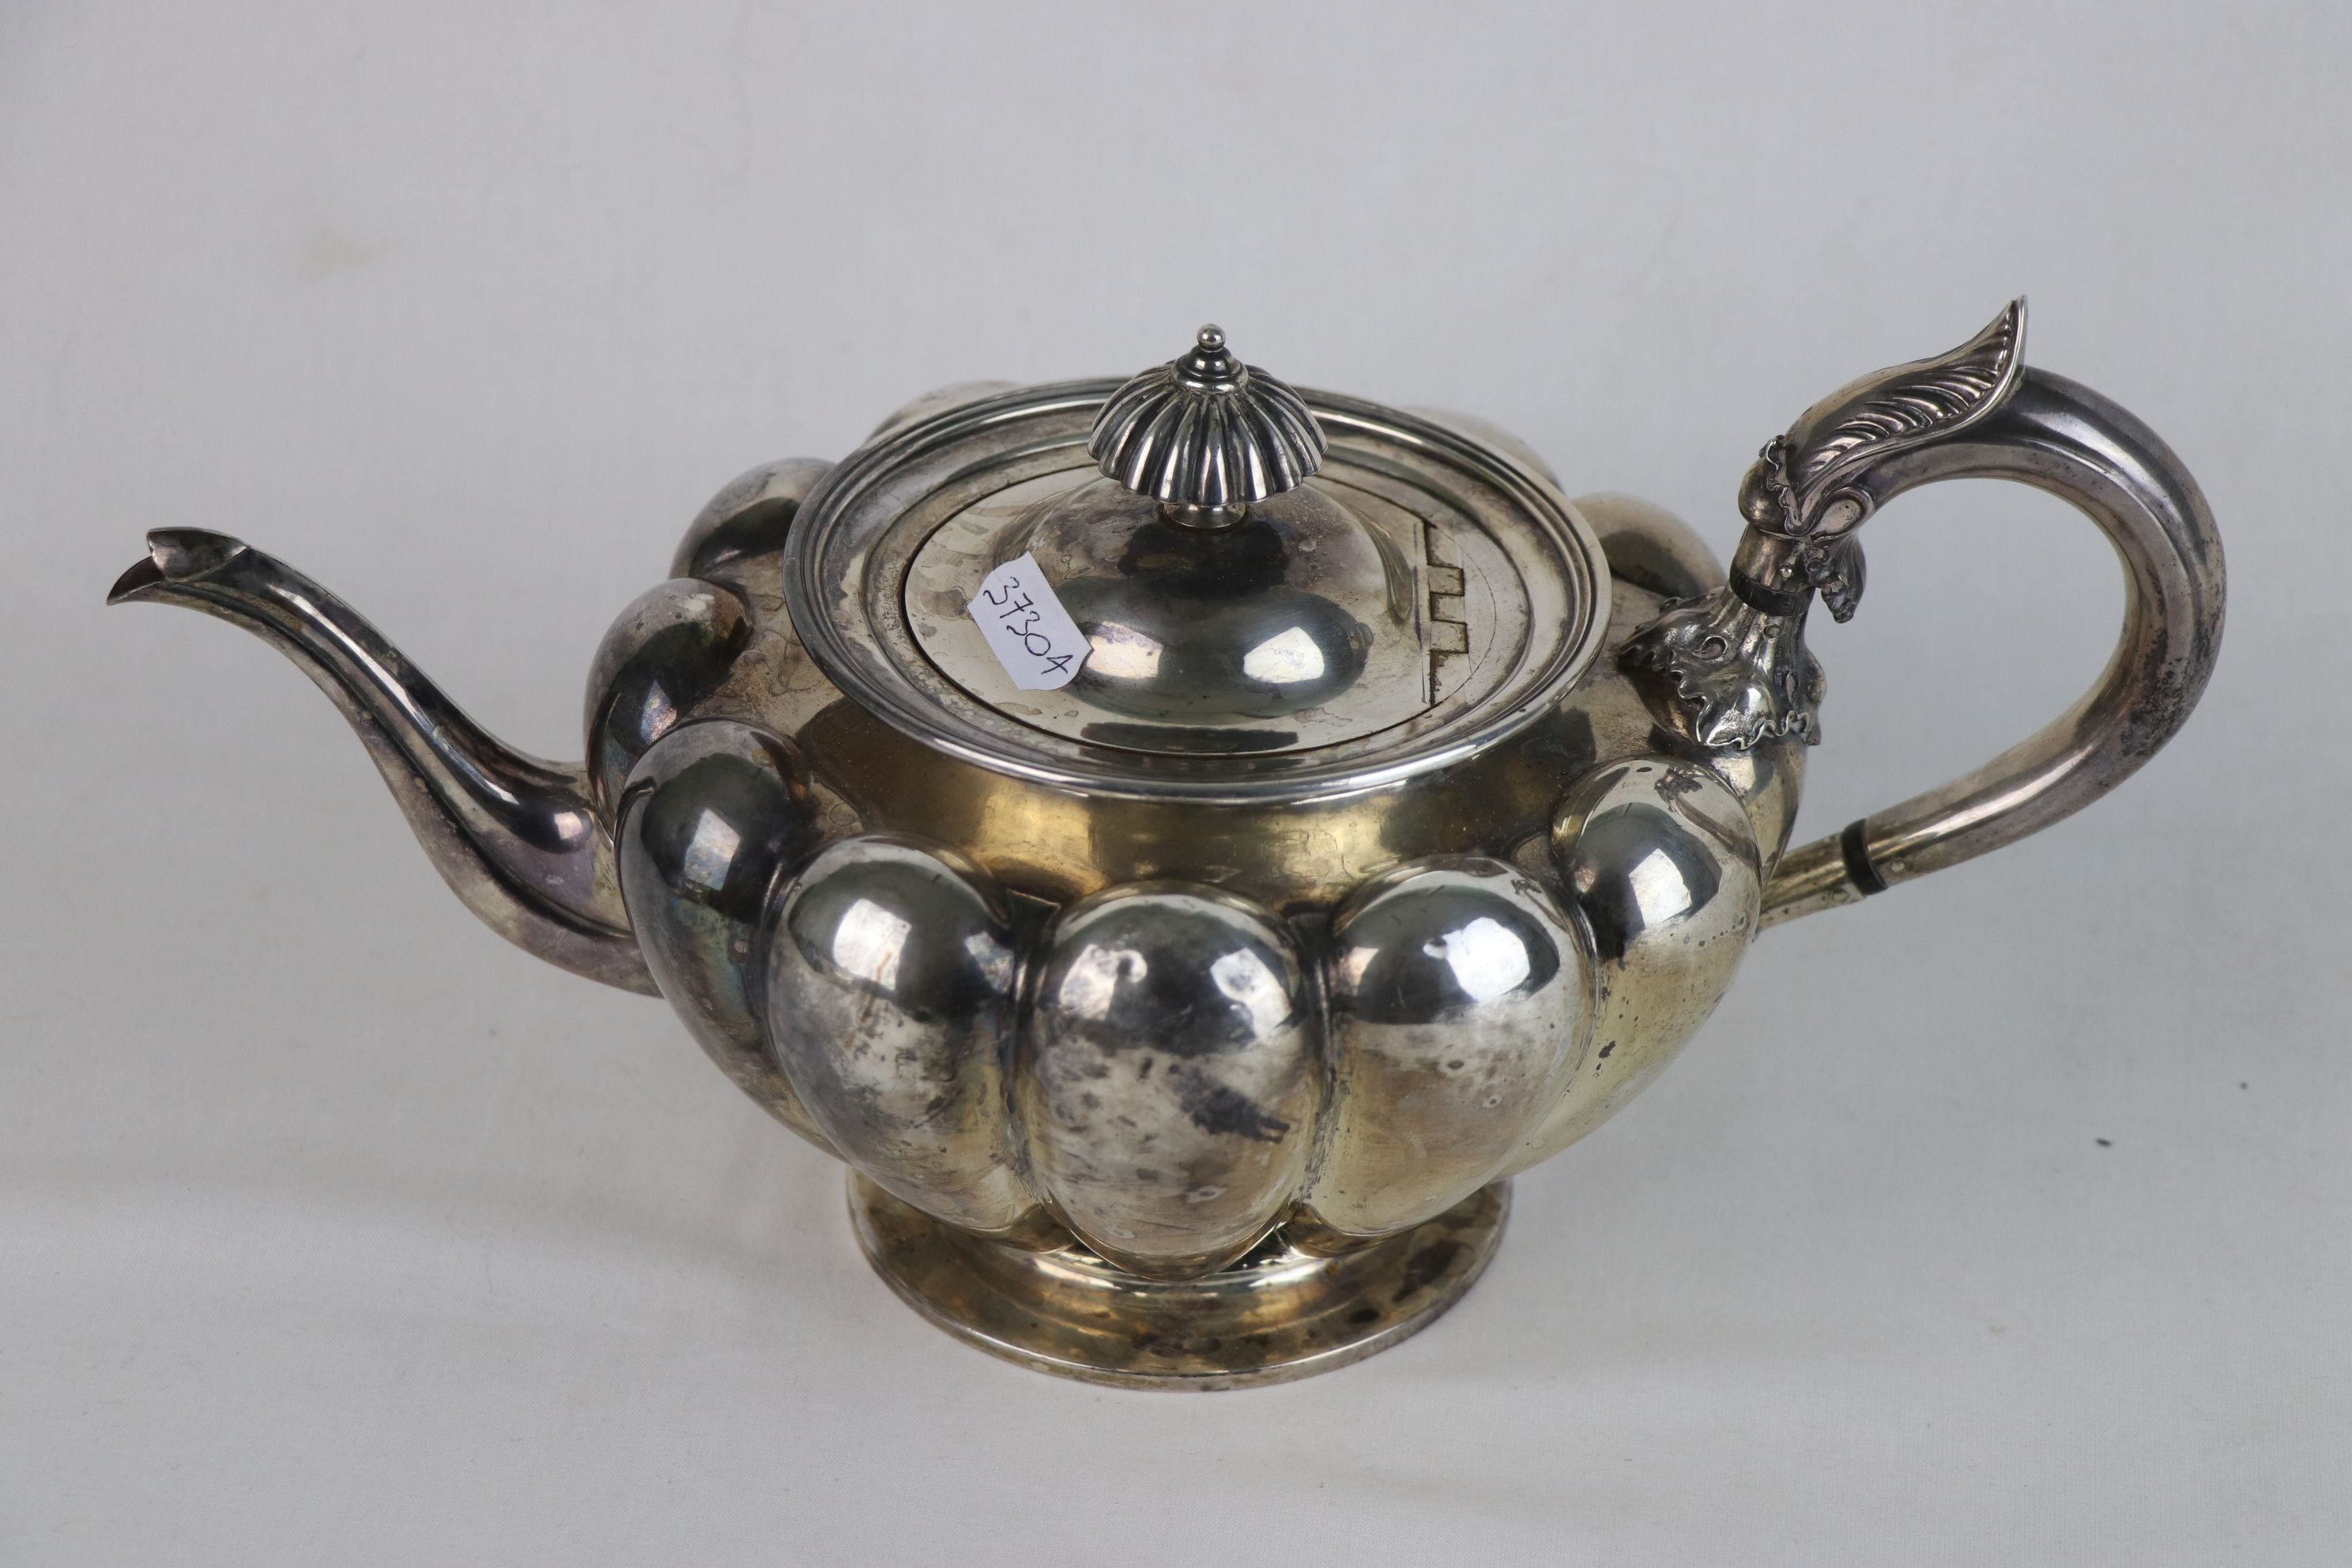 A fully hallmarked Victorian sterling silver Tea pot, maker marked for John Tapley, assayed in - Image 4 of 8